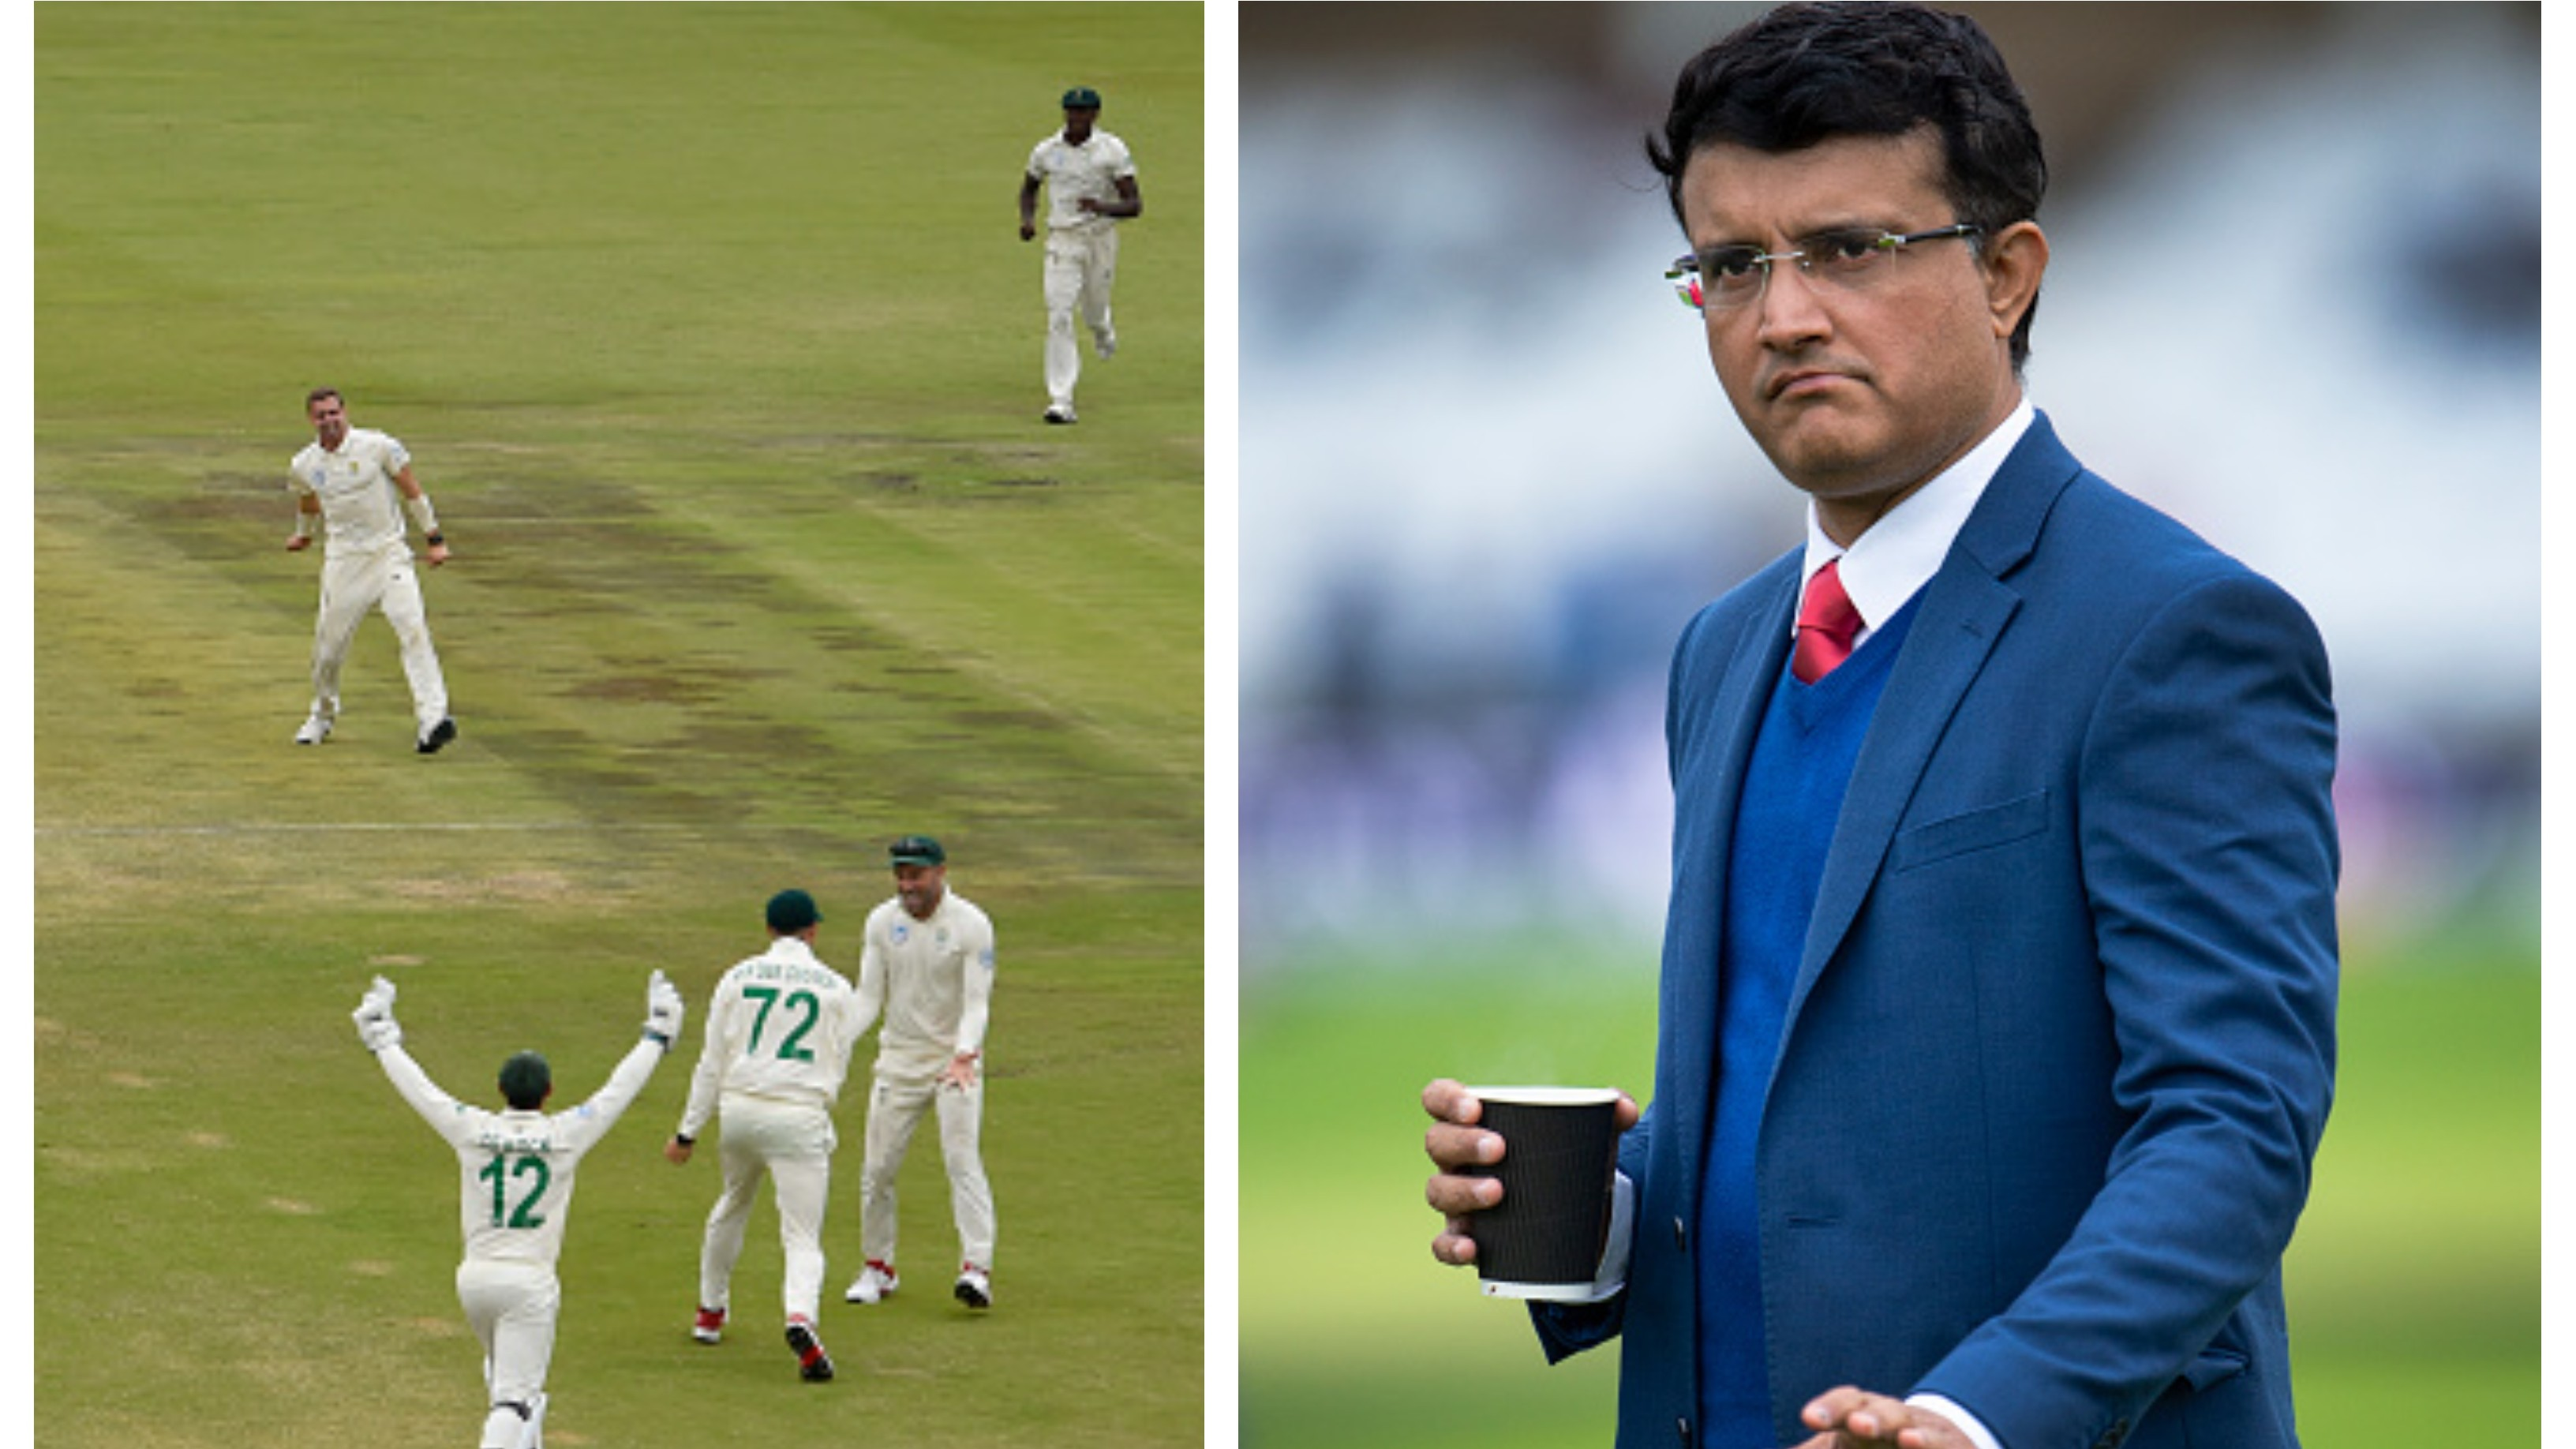 Too early to comment on proposal to mandate four-day Test: Ganguly